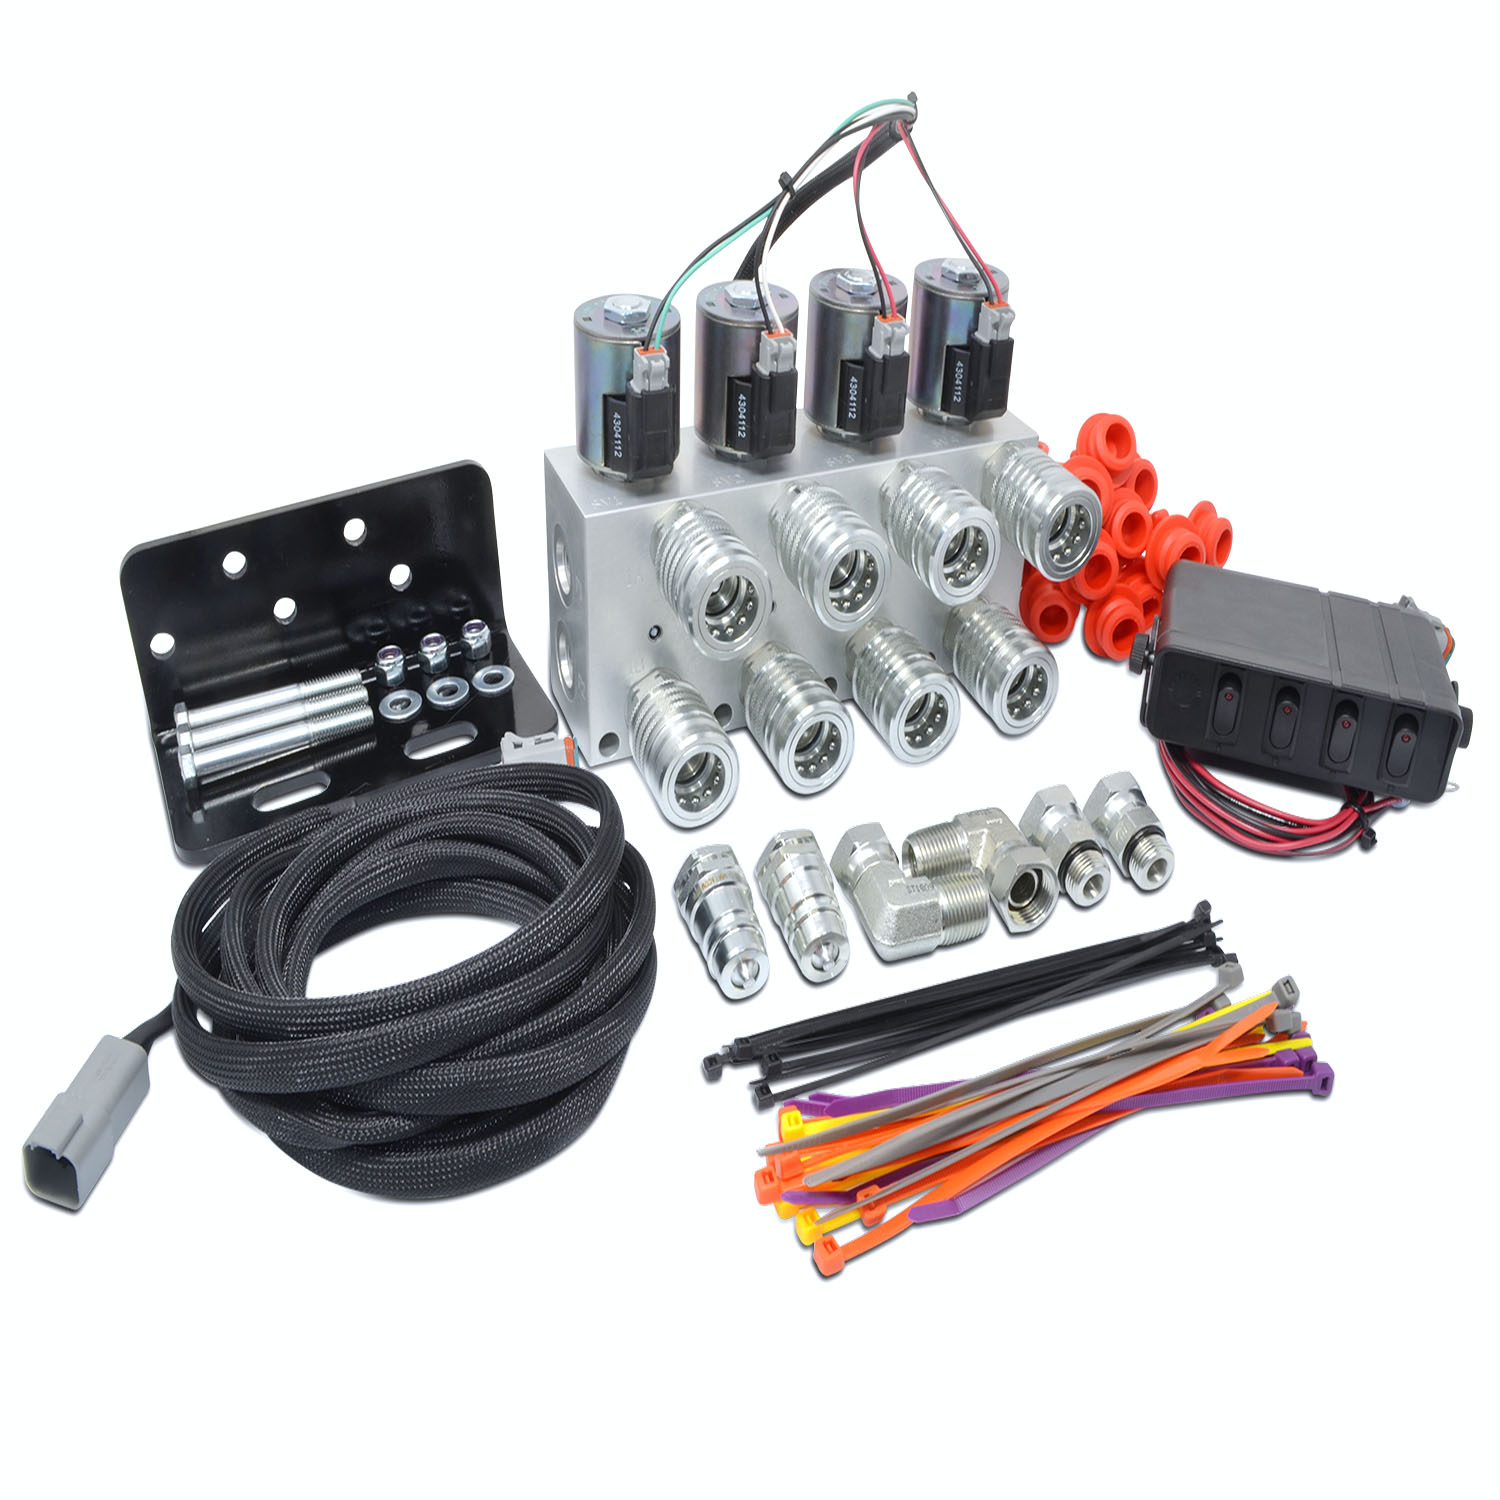 Hydraulic Multiplier Kit, 4 Circuit Selector Valve Including Couplers and  Switch Box Control